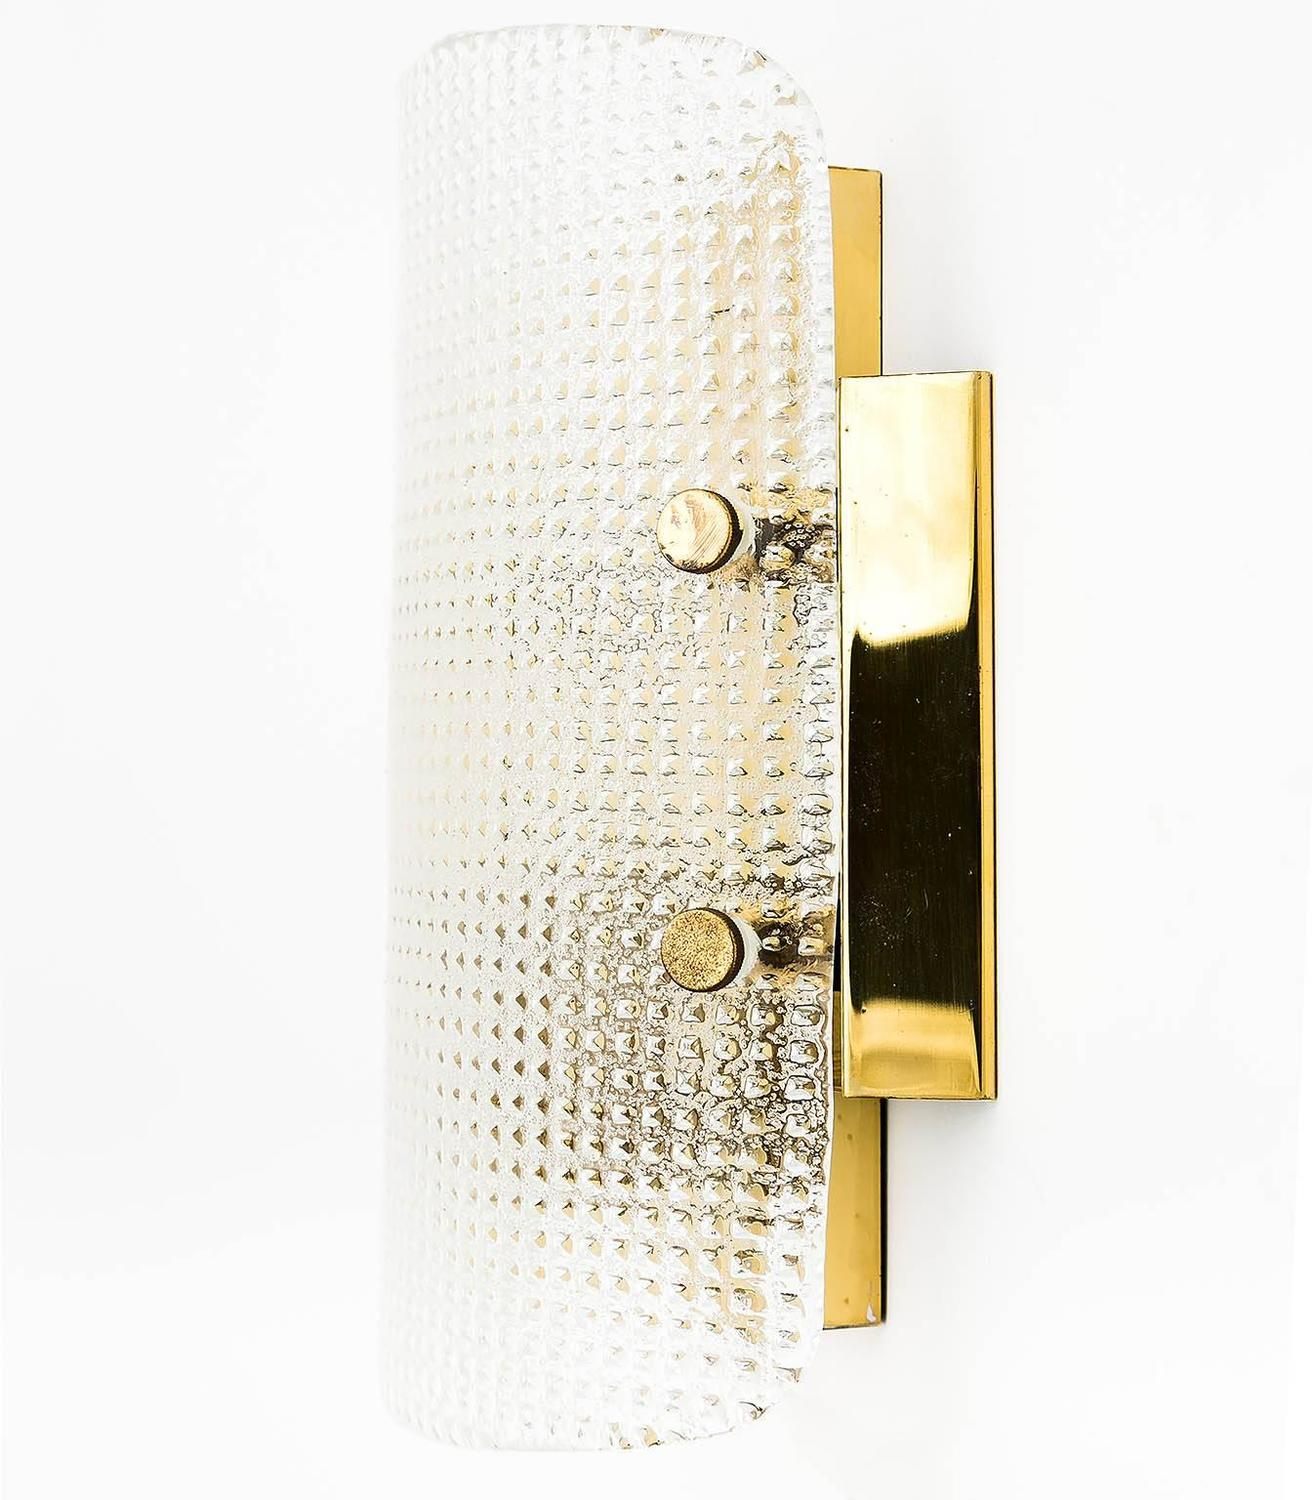 Pair of Hillebrand Wall Lights Sconces Brass Square Pattern Glass 1960s For Sale at 1stdibs